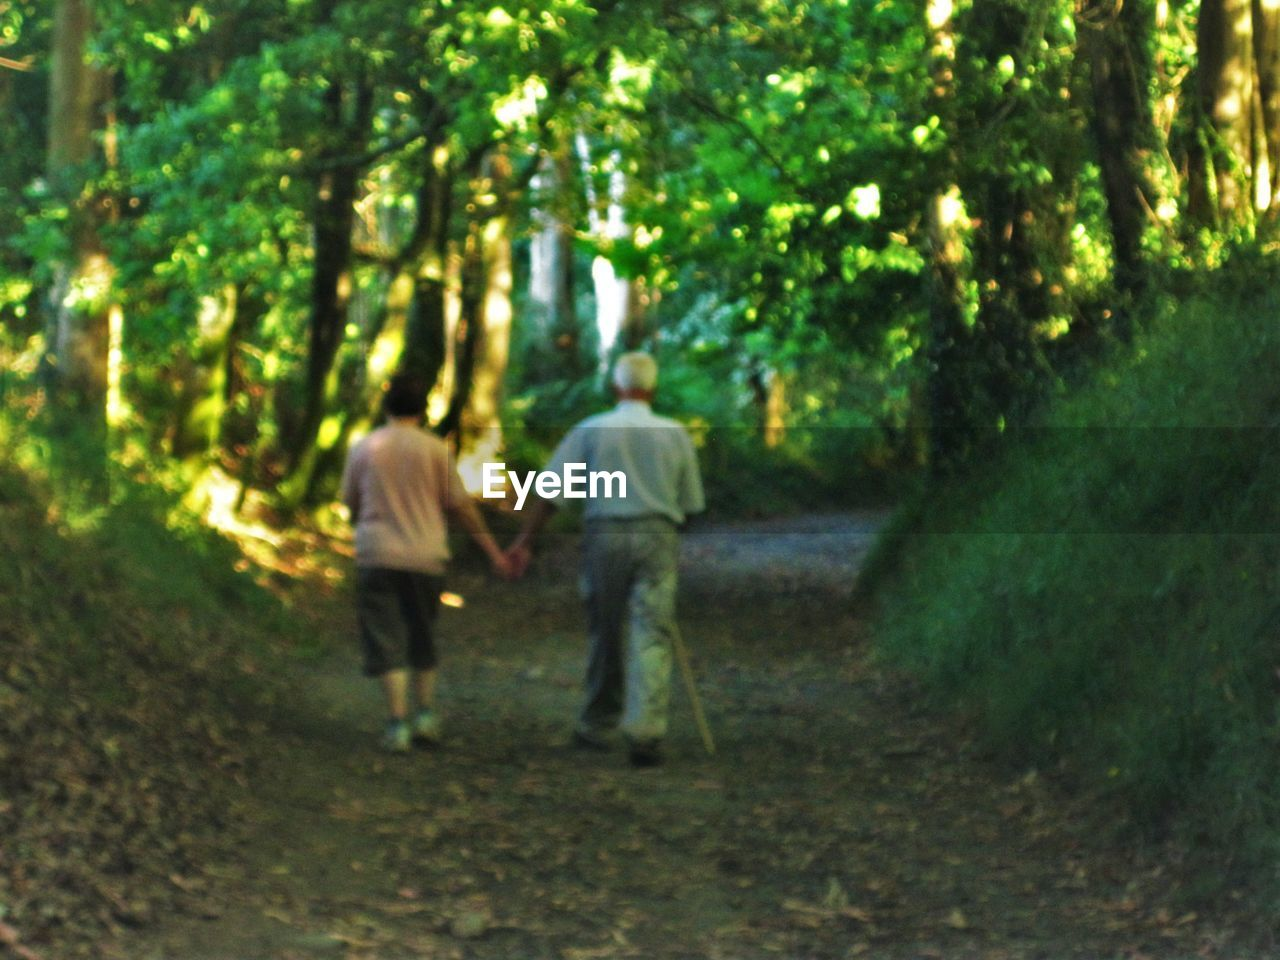 tree, two people, rear view, walking, nature, togetherness, forest, growth, real people, full length, men, love, leisure activity, tree trunk, outdoors, day, childhood, branch, women, bonding, beauty in nature, people, adult